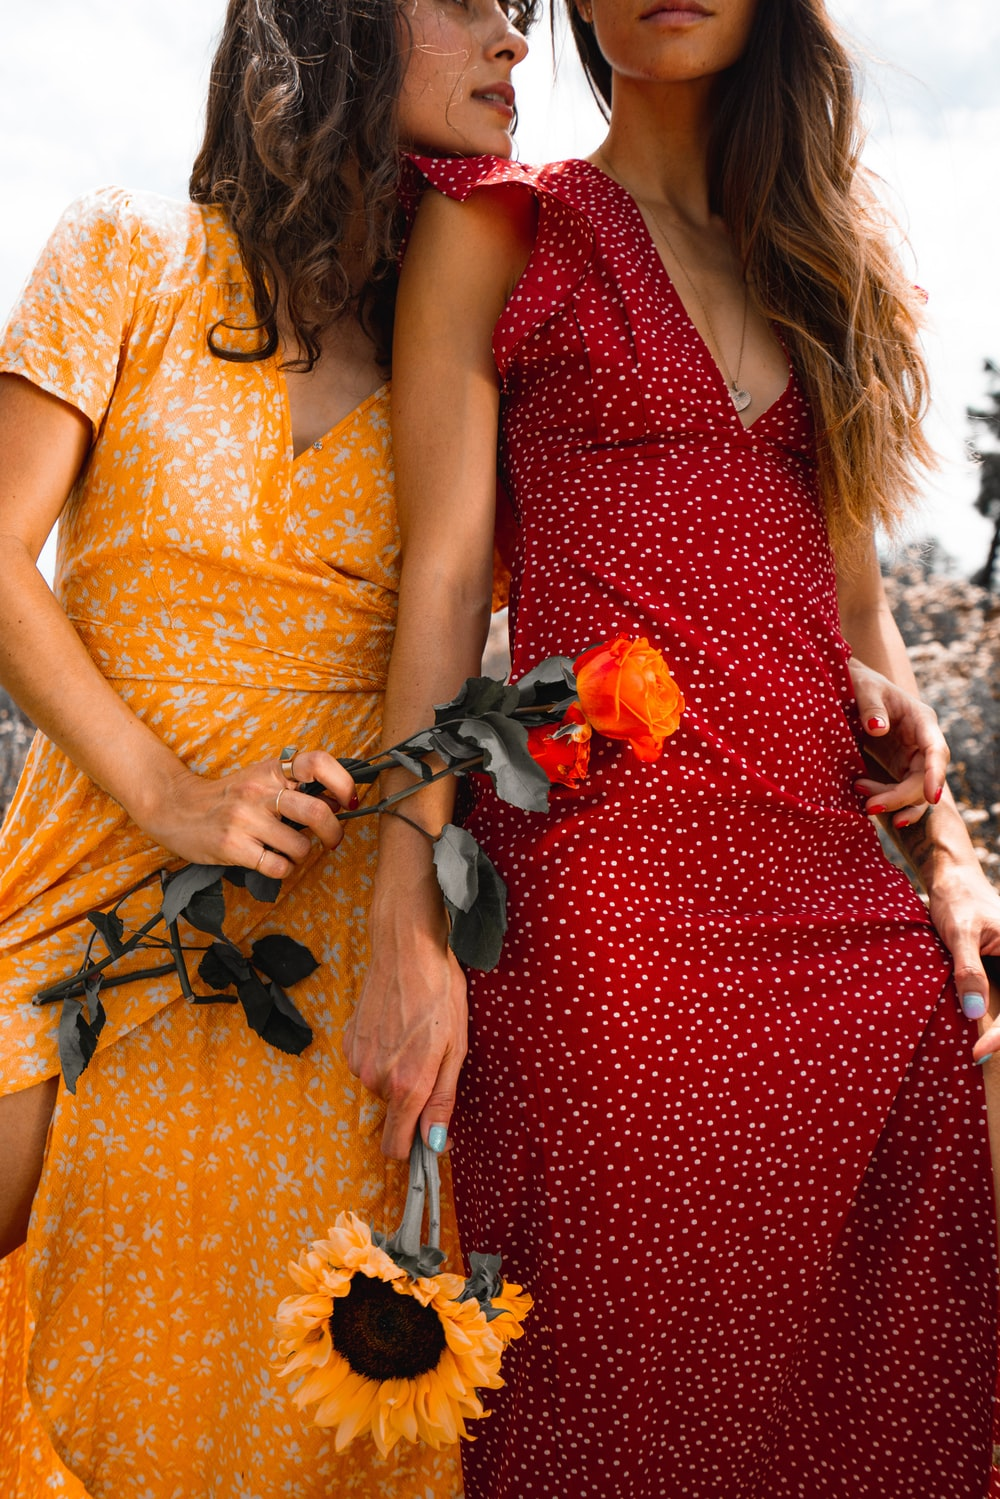 woman in yellow and red floral dress holding orange flower